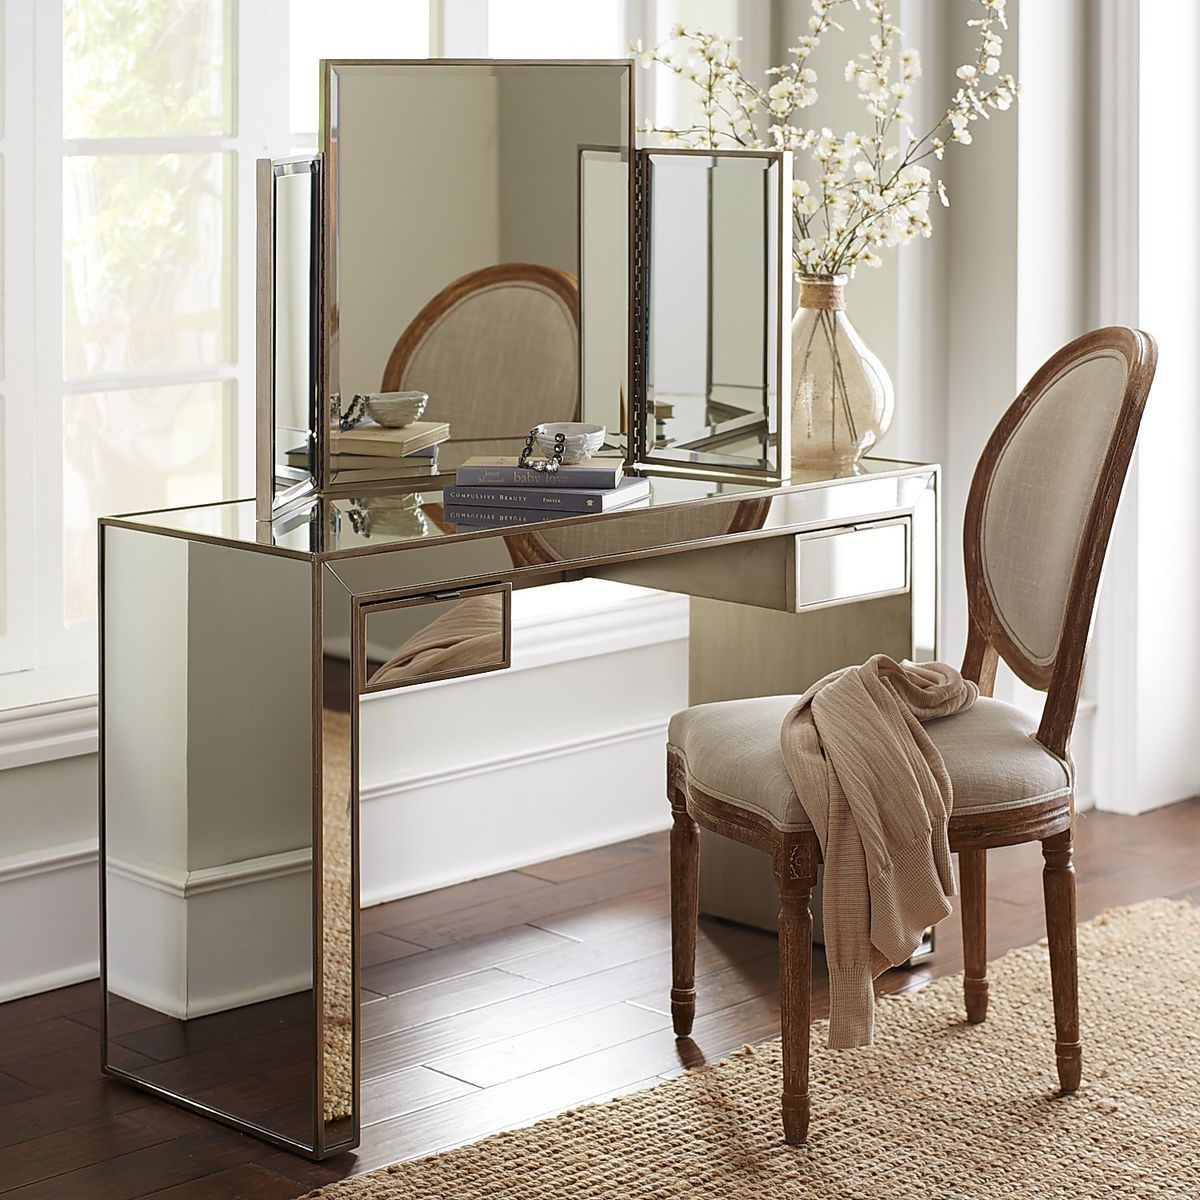 Alexa Mirror Vanity Pier 1 Imports Mirrored Vanity Table